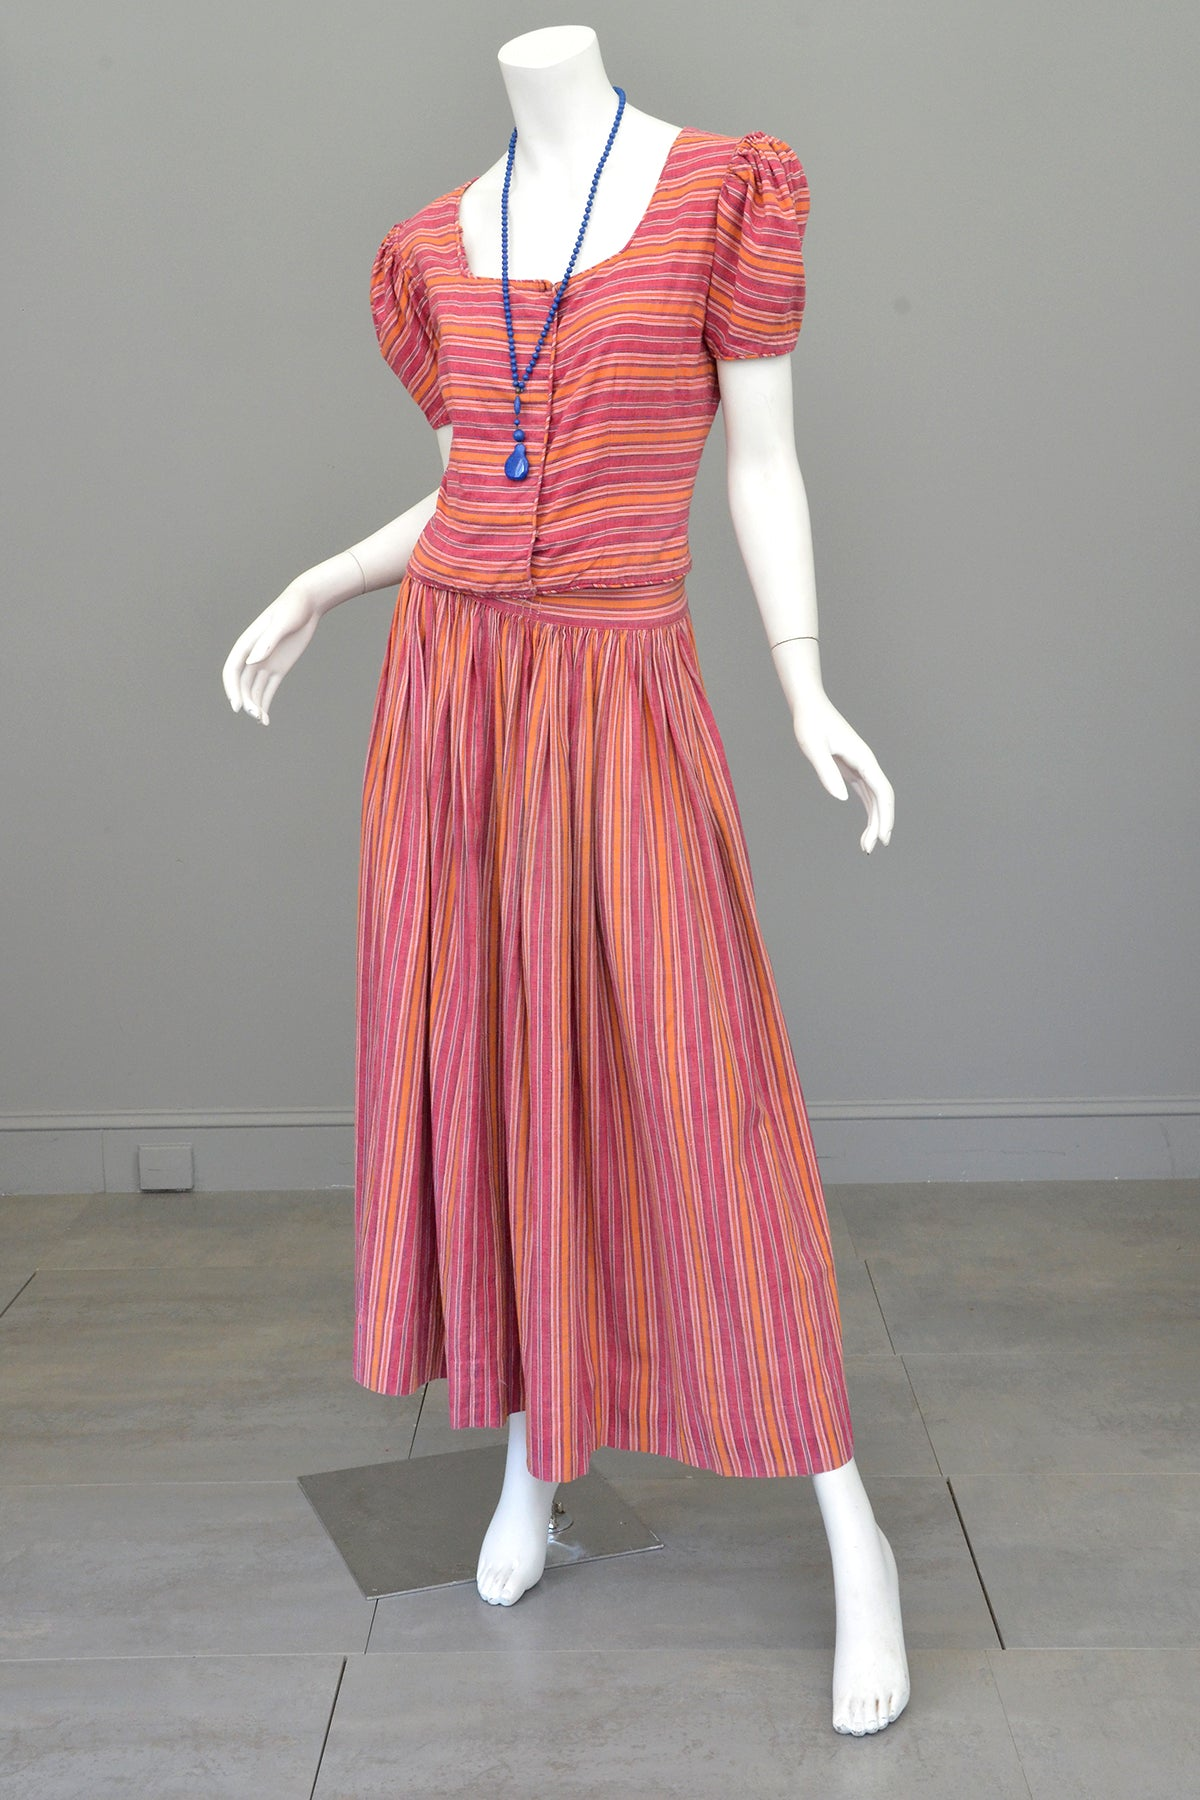 1930s 40s Puff Sleeve Peasant Folk Top + Skirt Two Piece Dress Saks